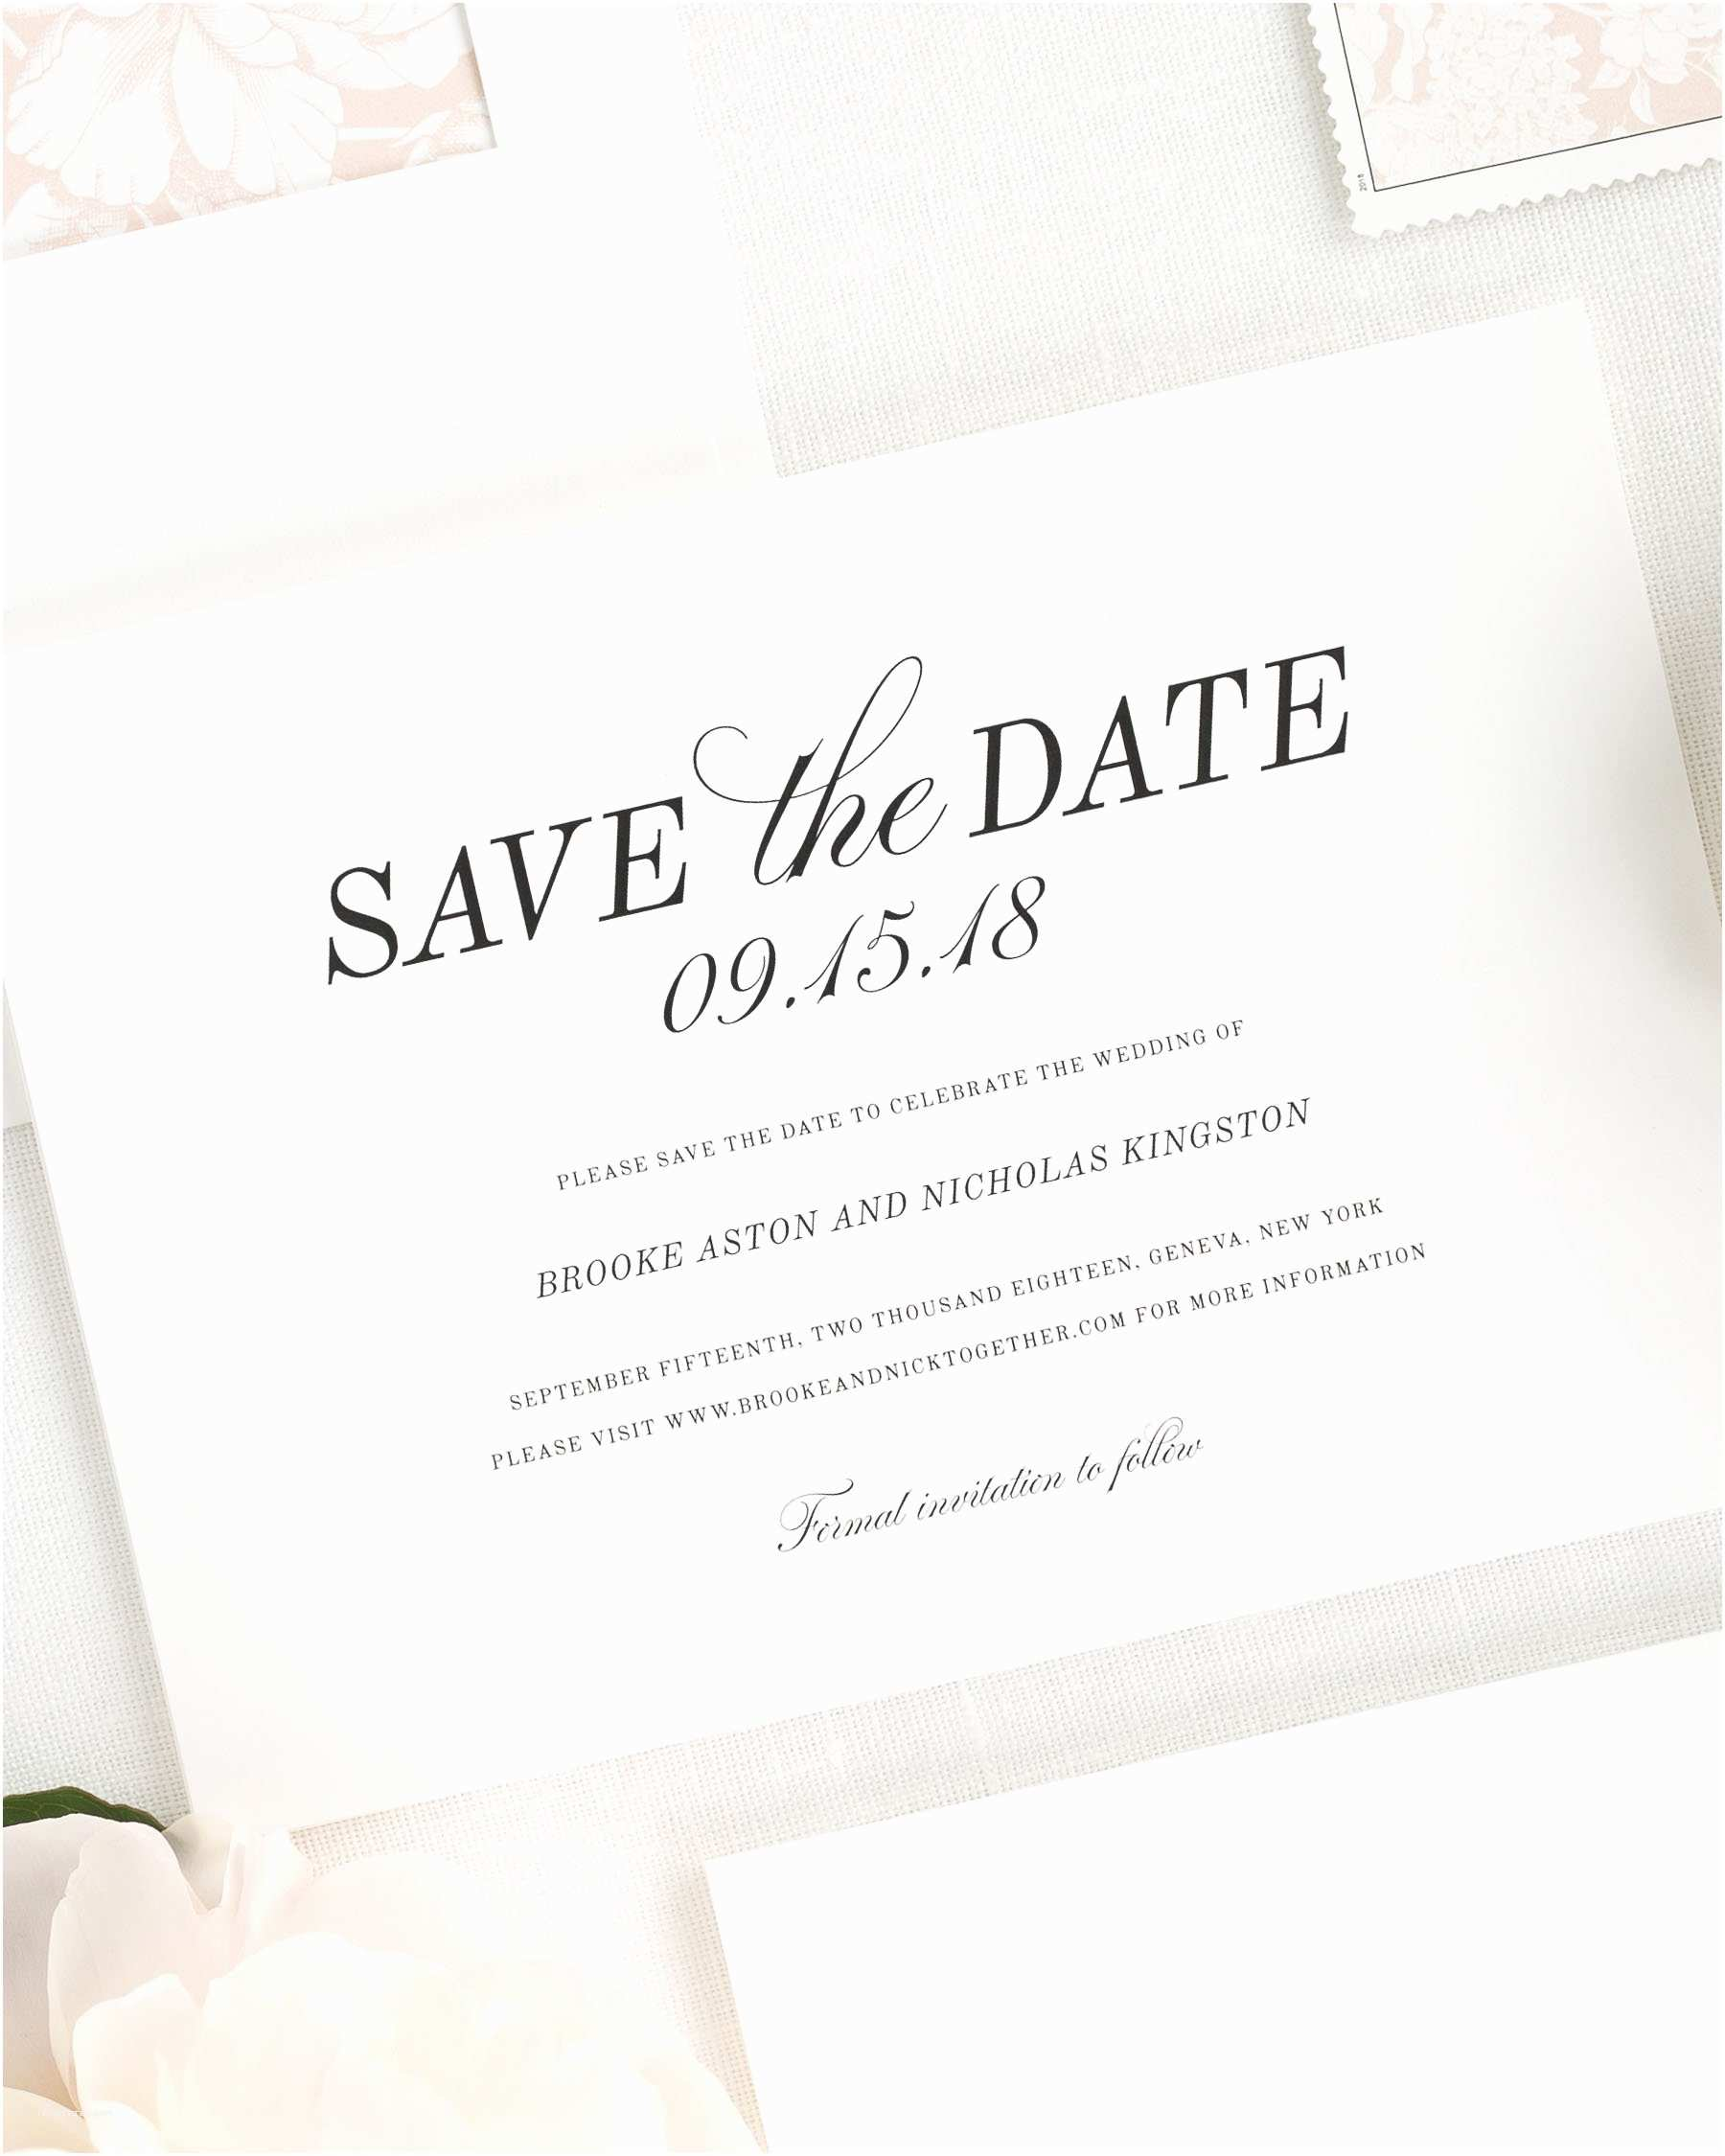 Save the Date Wedding Invitations Classic Romance Save the Date Cards Save the Date Cards